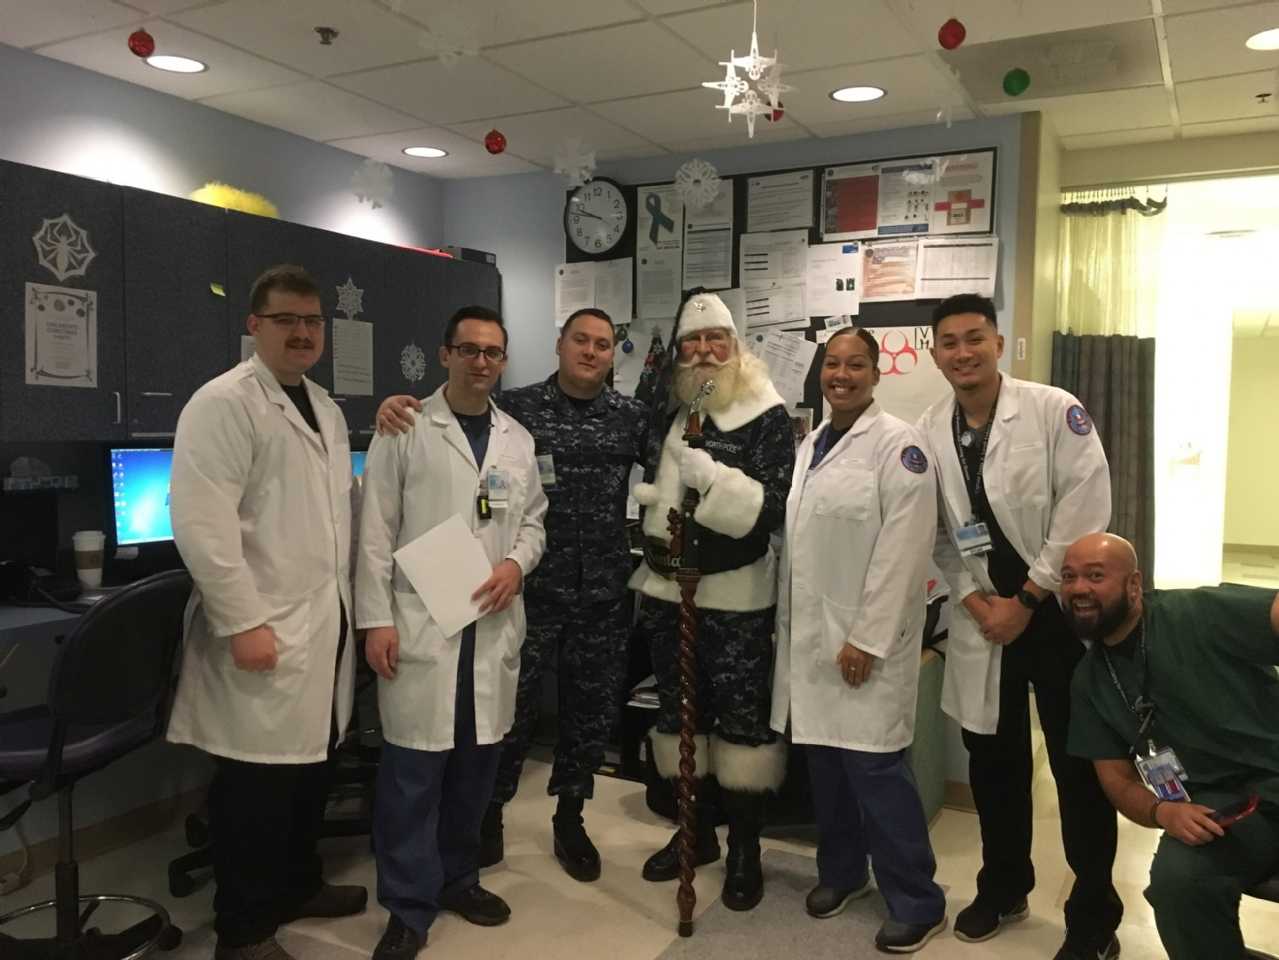 Santa Doug with Medical Staff at James A Lovell FHCC